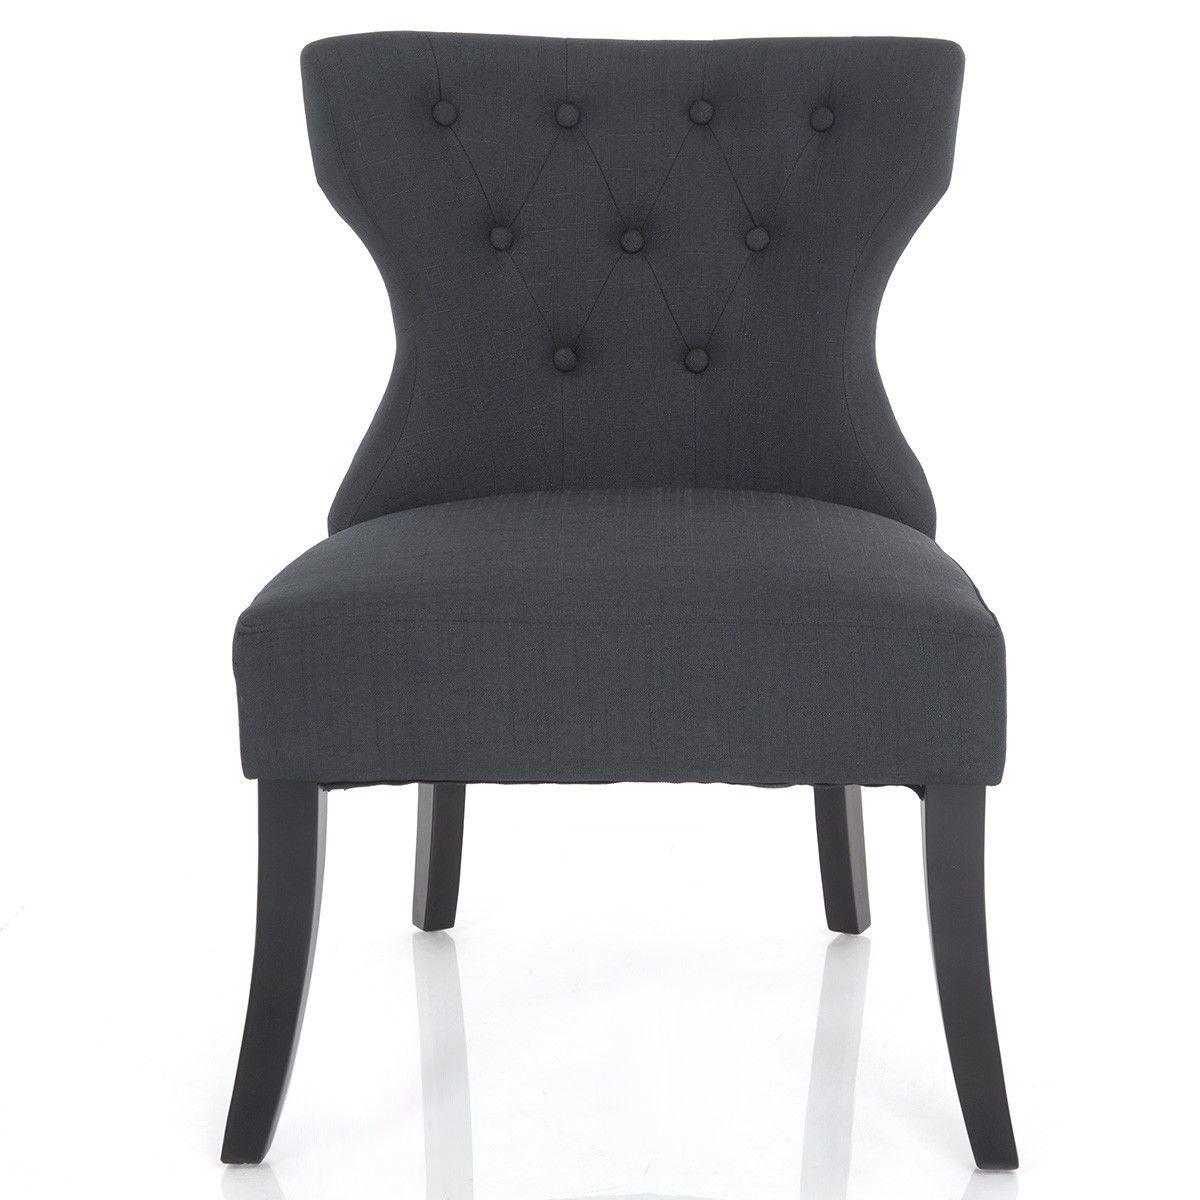 Gymax Dining Chair Linen Fabric Tufted Back Armless Upholstered Living Room Furniture